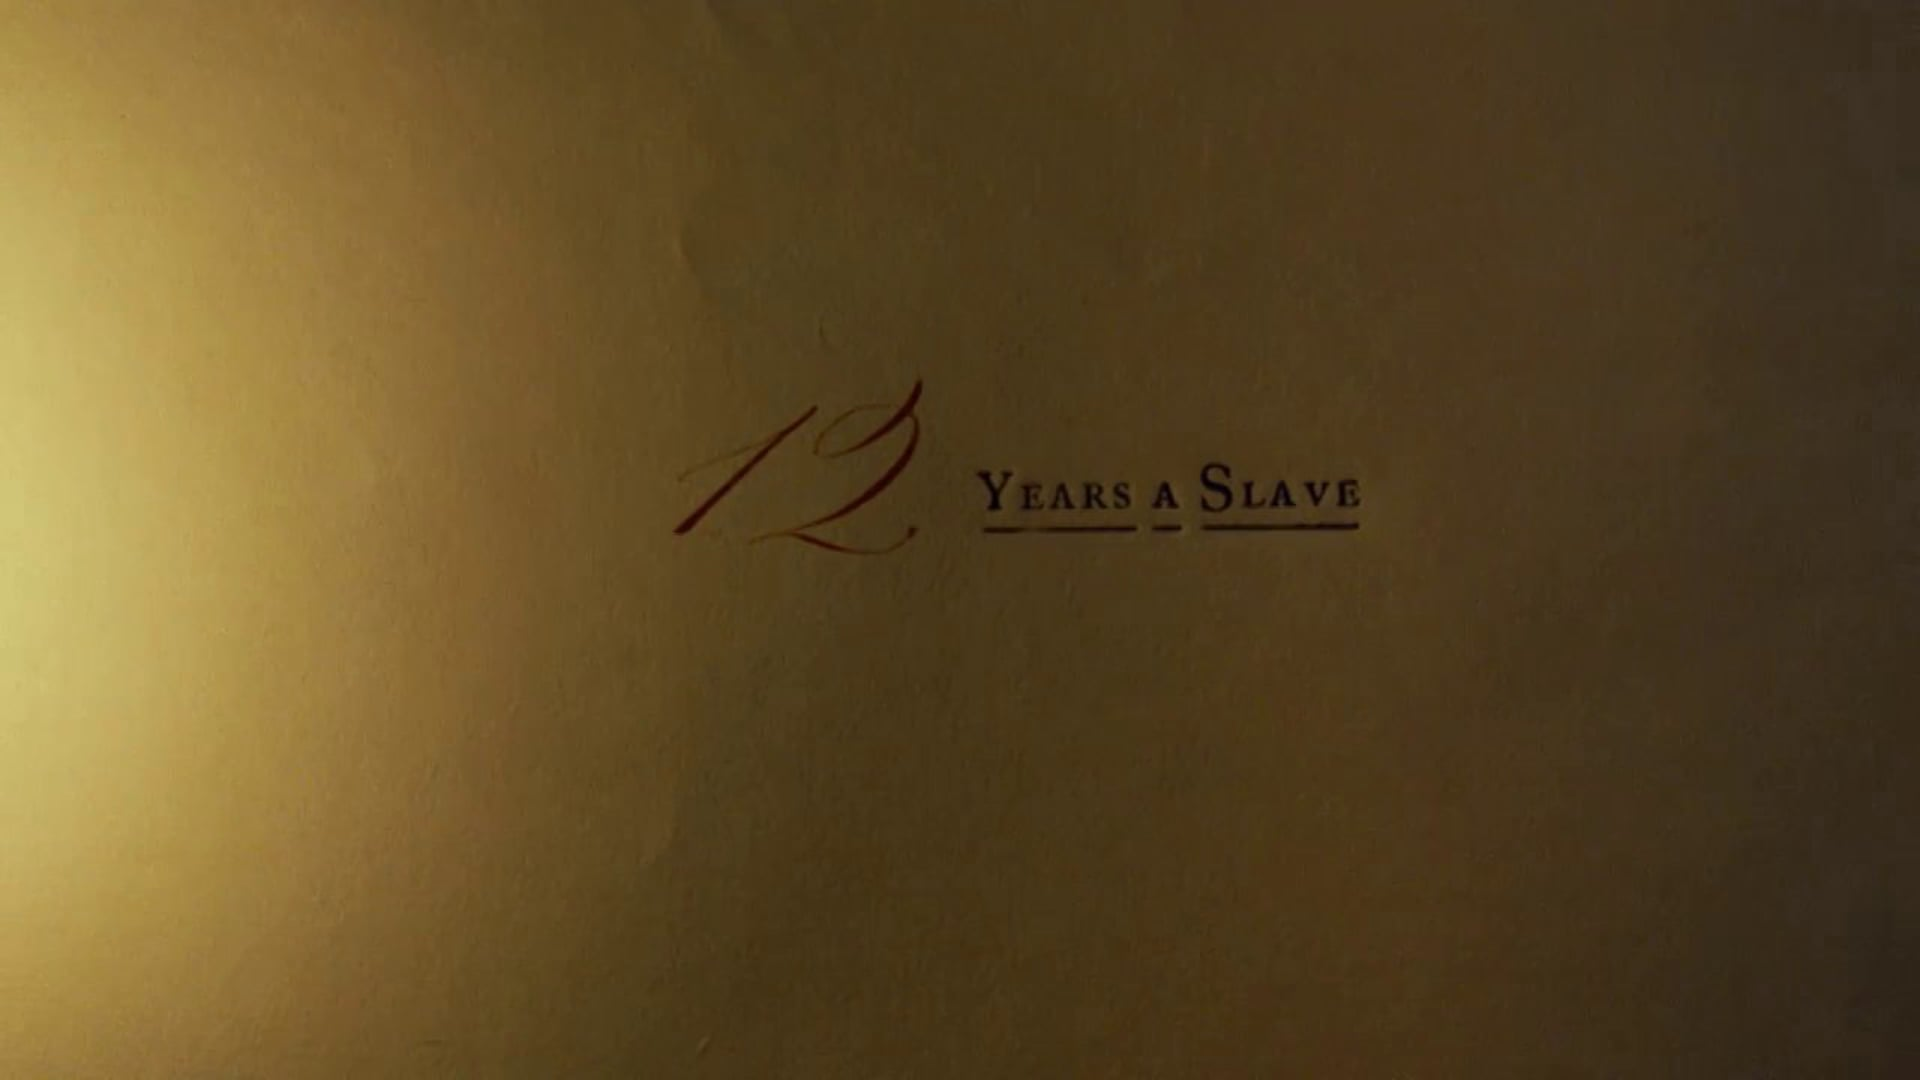 12 Years a Slave - Titles and Main on Ends